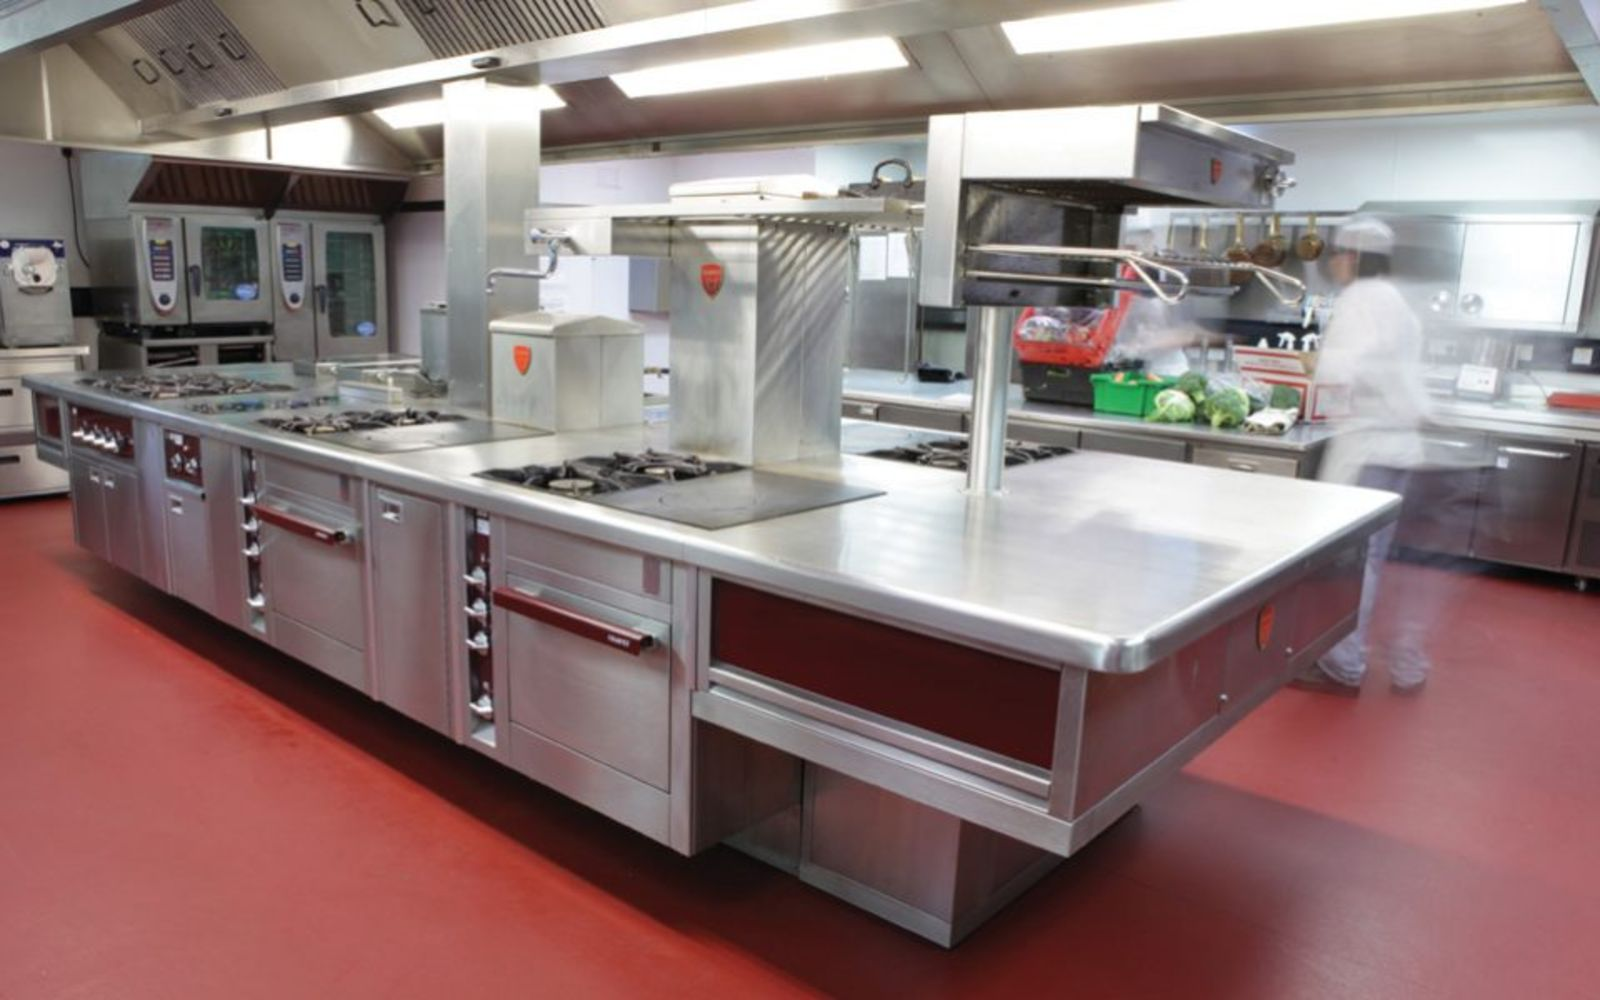 Commercial Catering Equipment - From a Commercial Catering College of HE